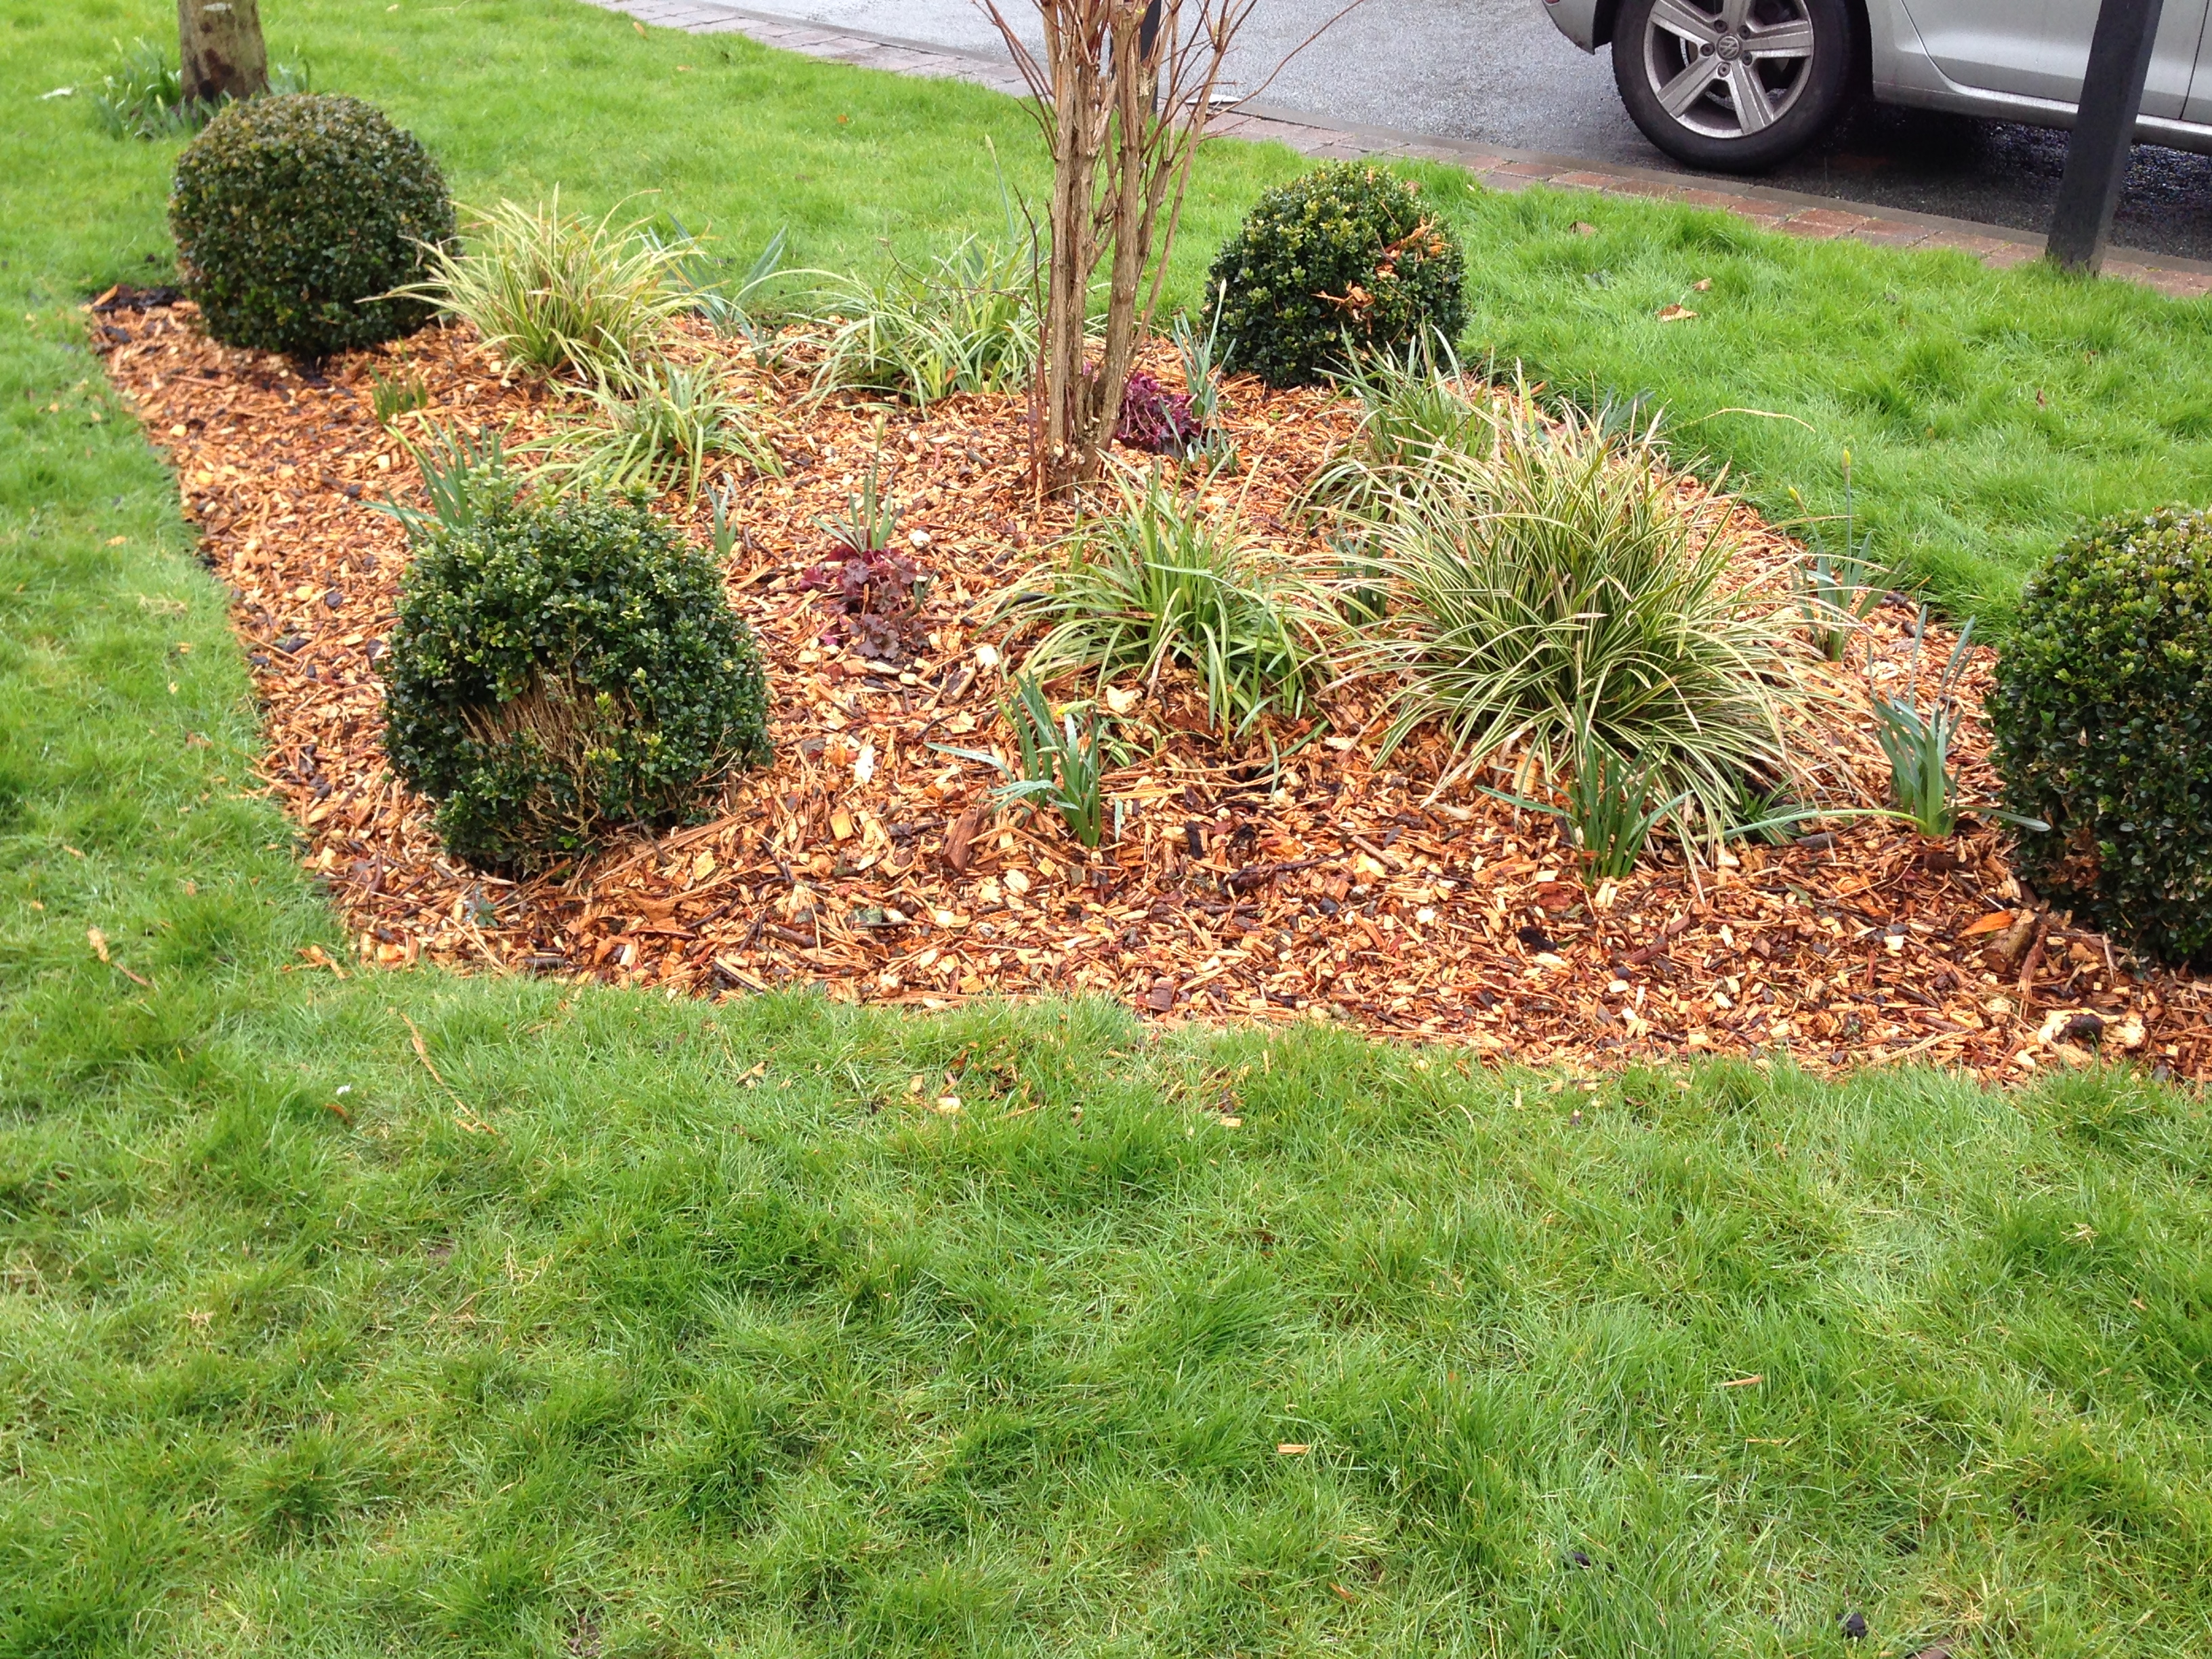 wood chipping mulch on flower bed